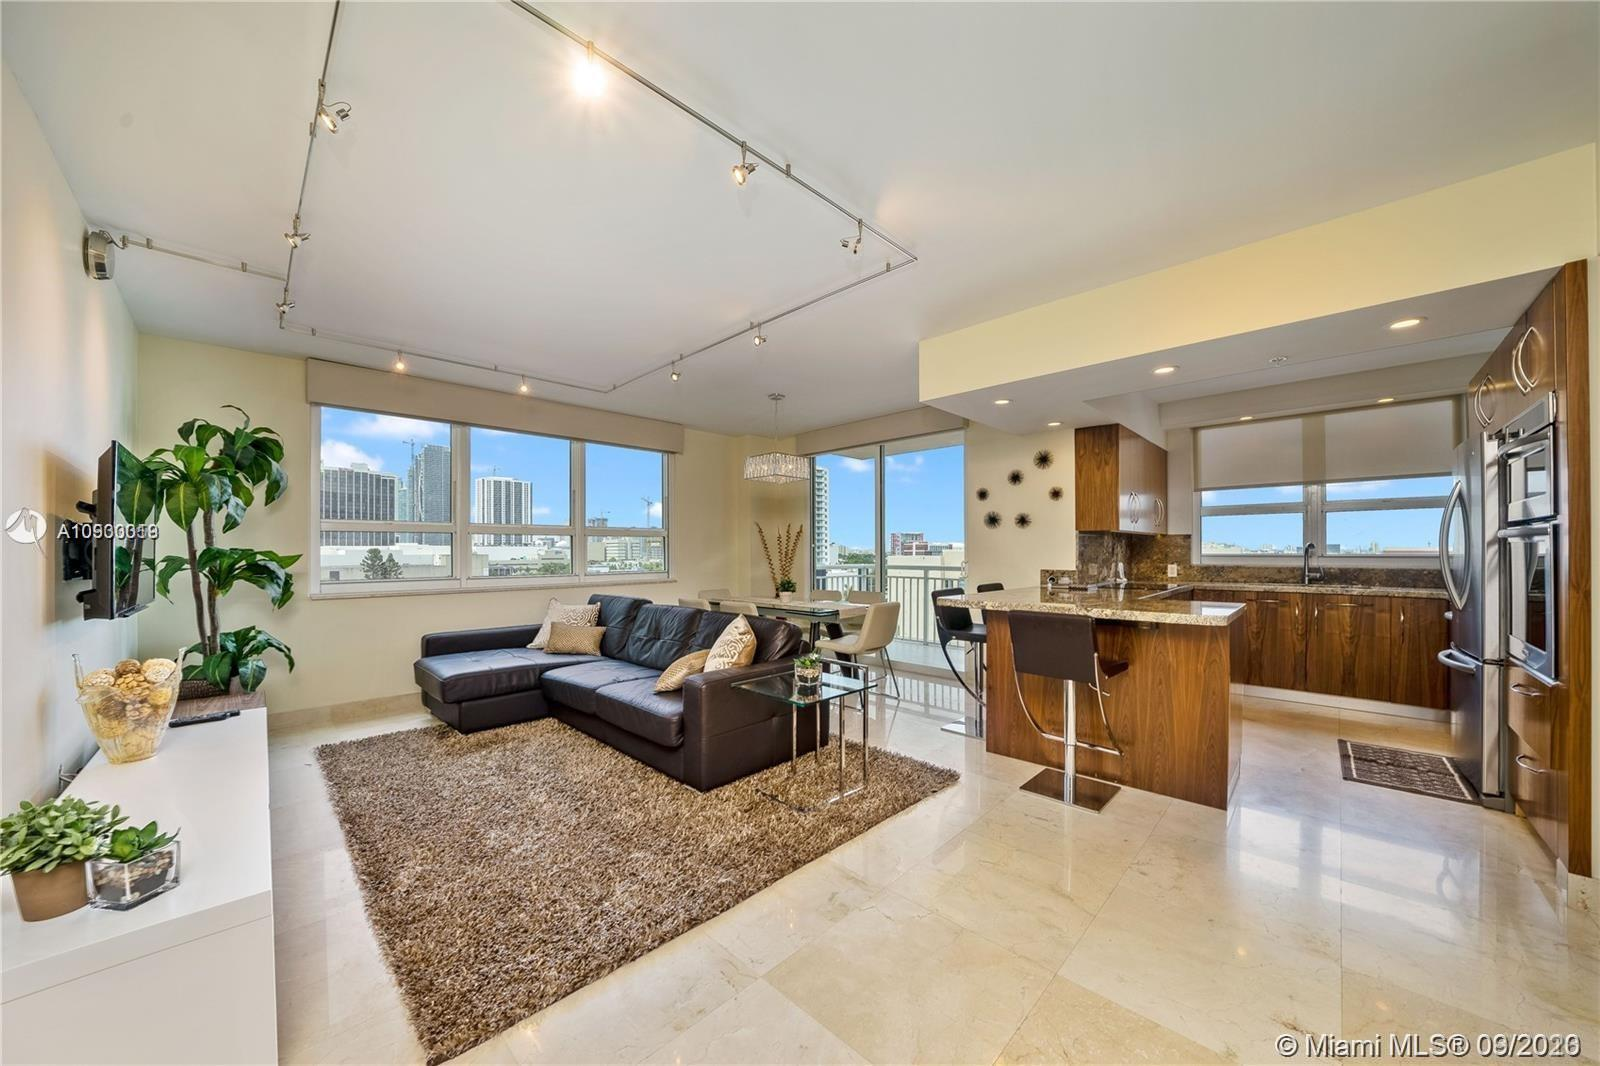 Turnkey, beautifully furnished 3/2 corner unit at Cite on the Bay Condominium in Miami's  Edgewater